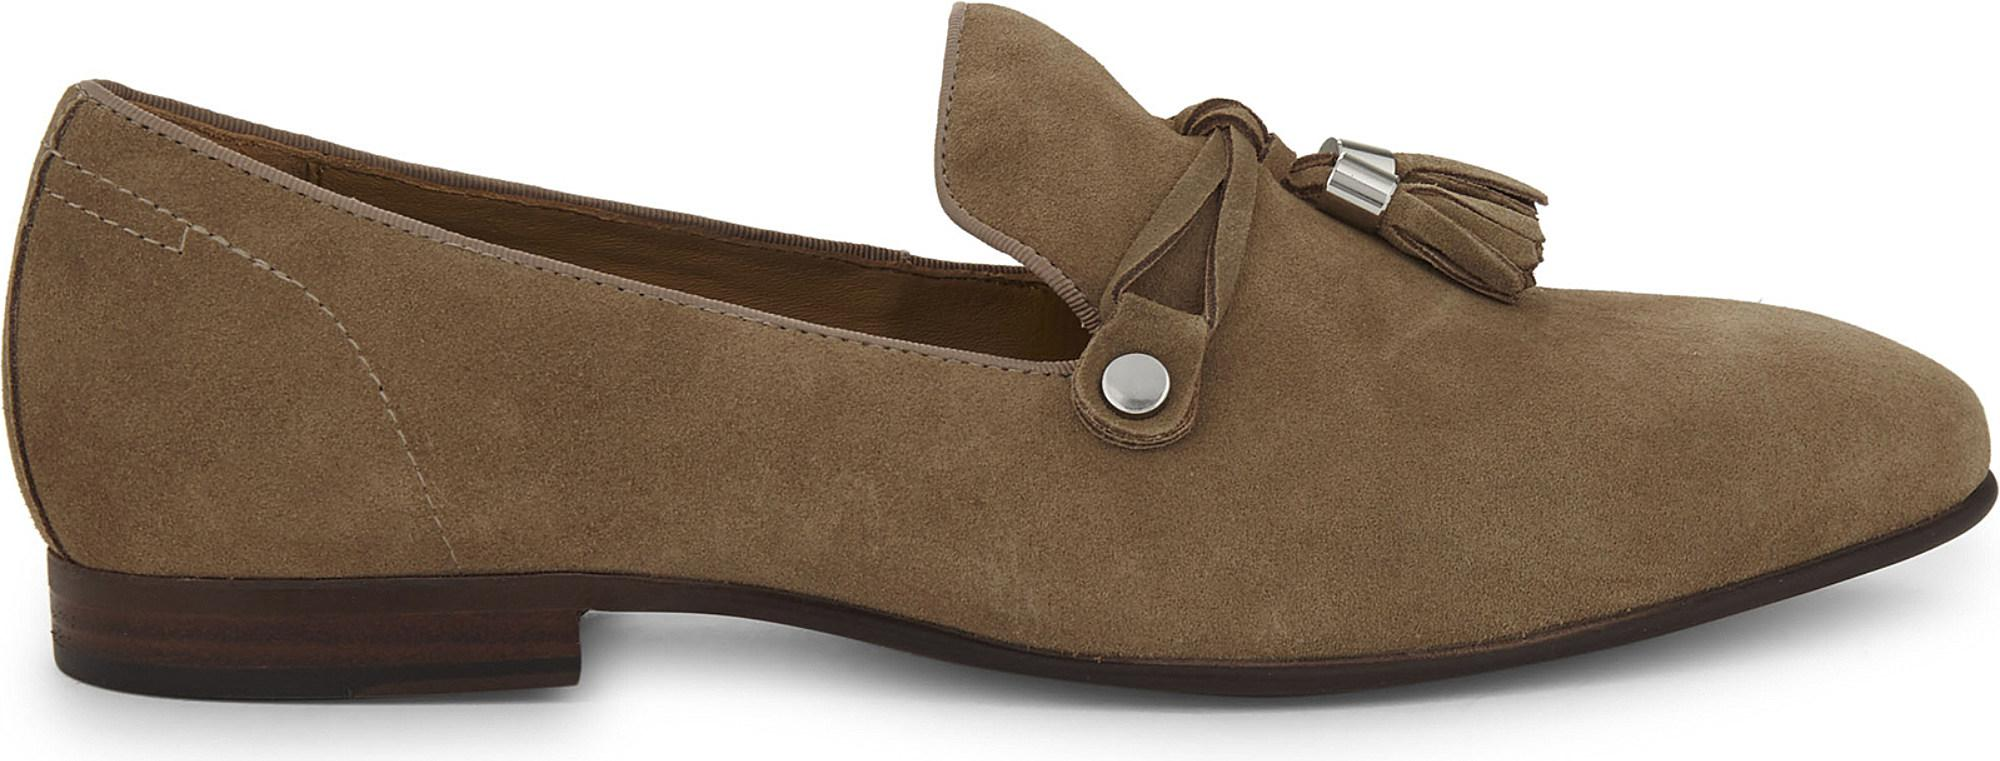 7761262944e Aldo Mccrery Suede Loafers in Natural - Lyst